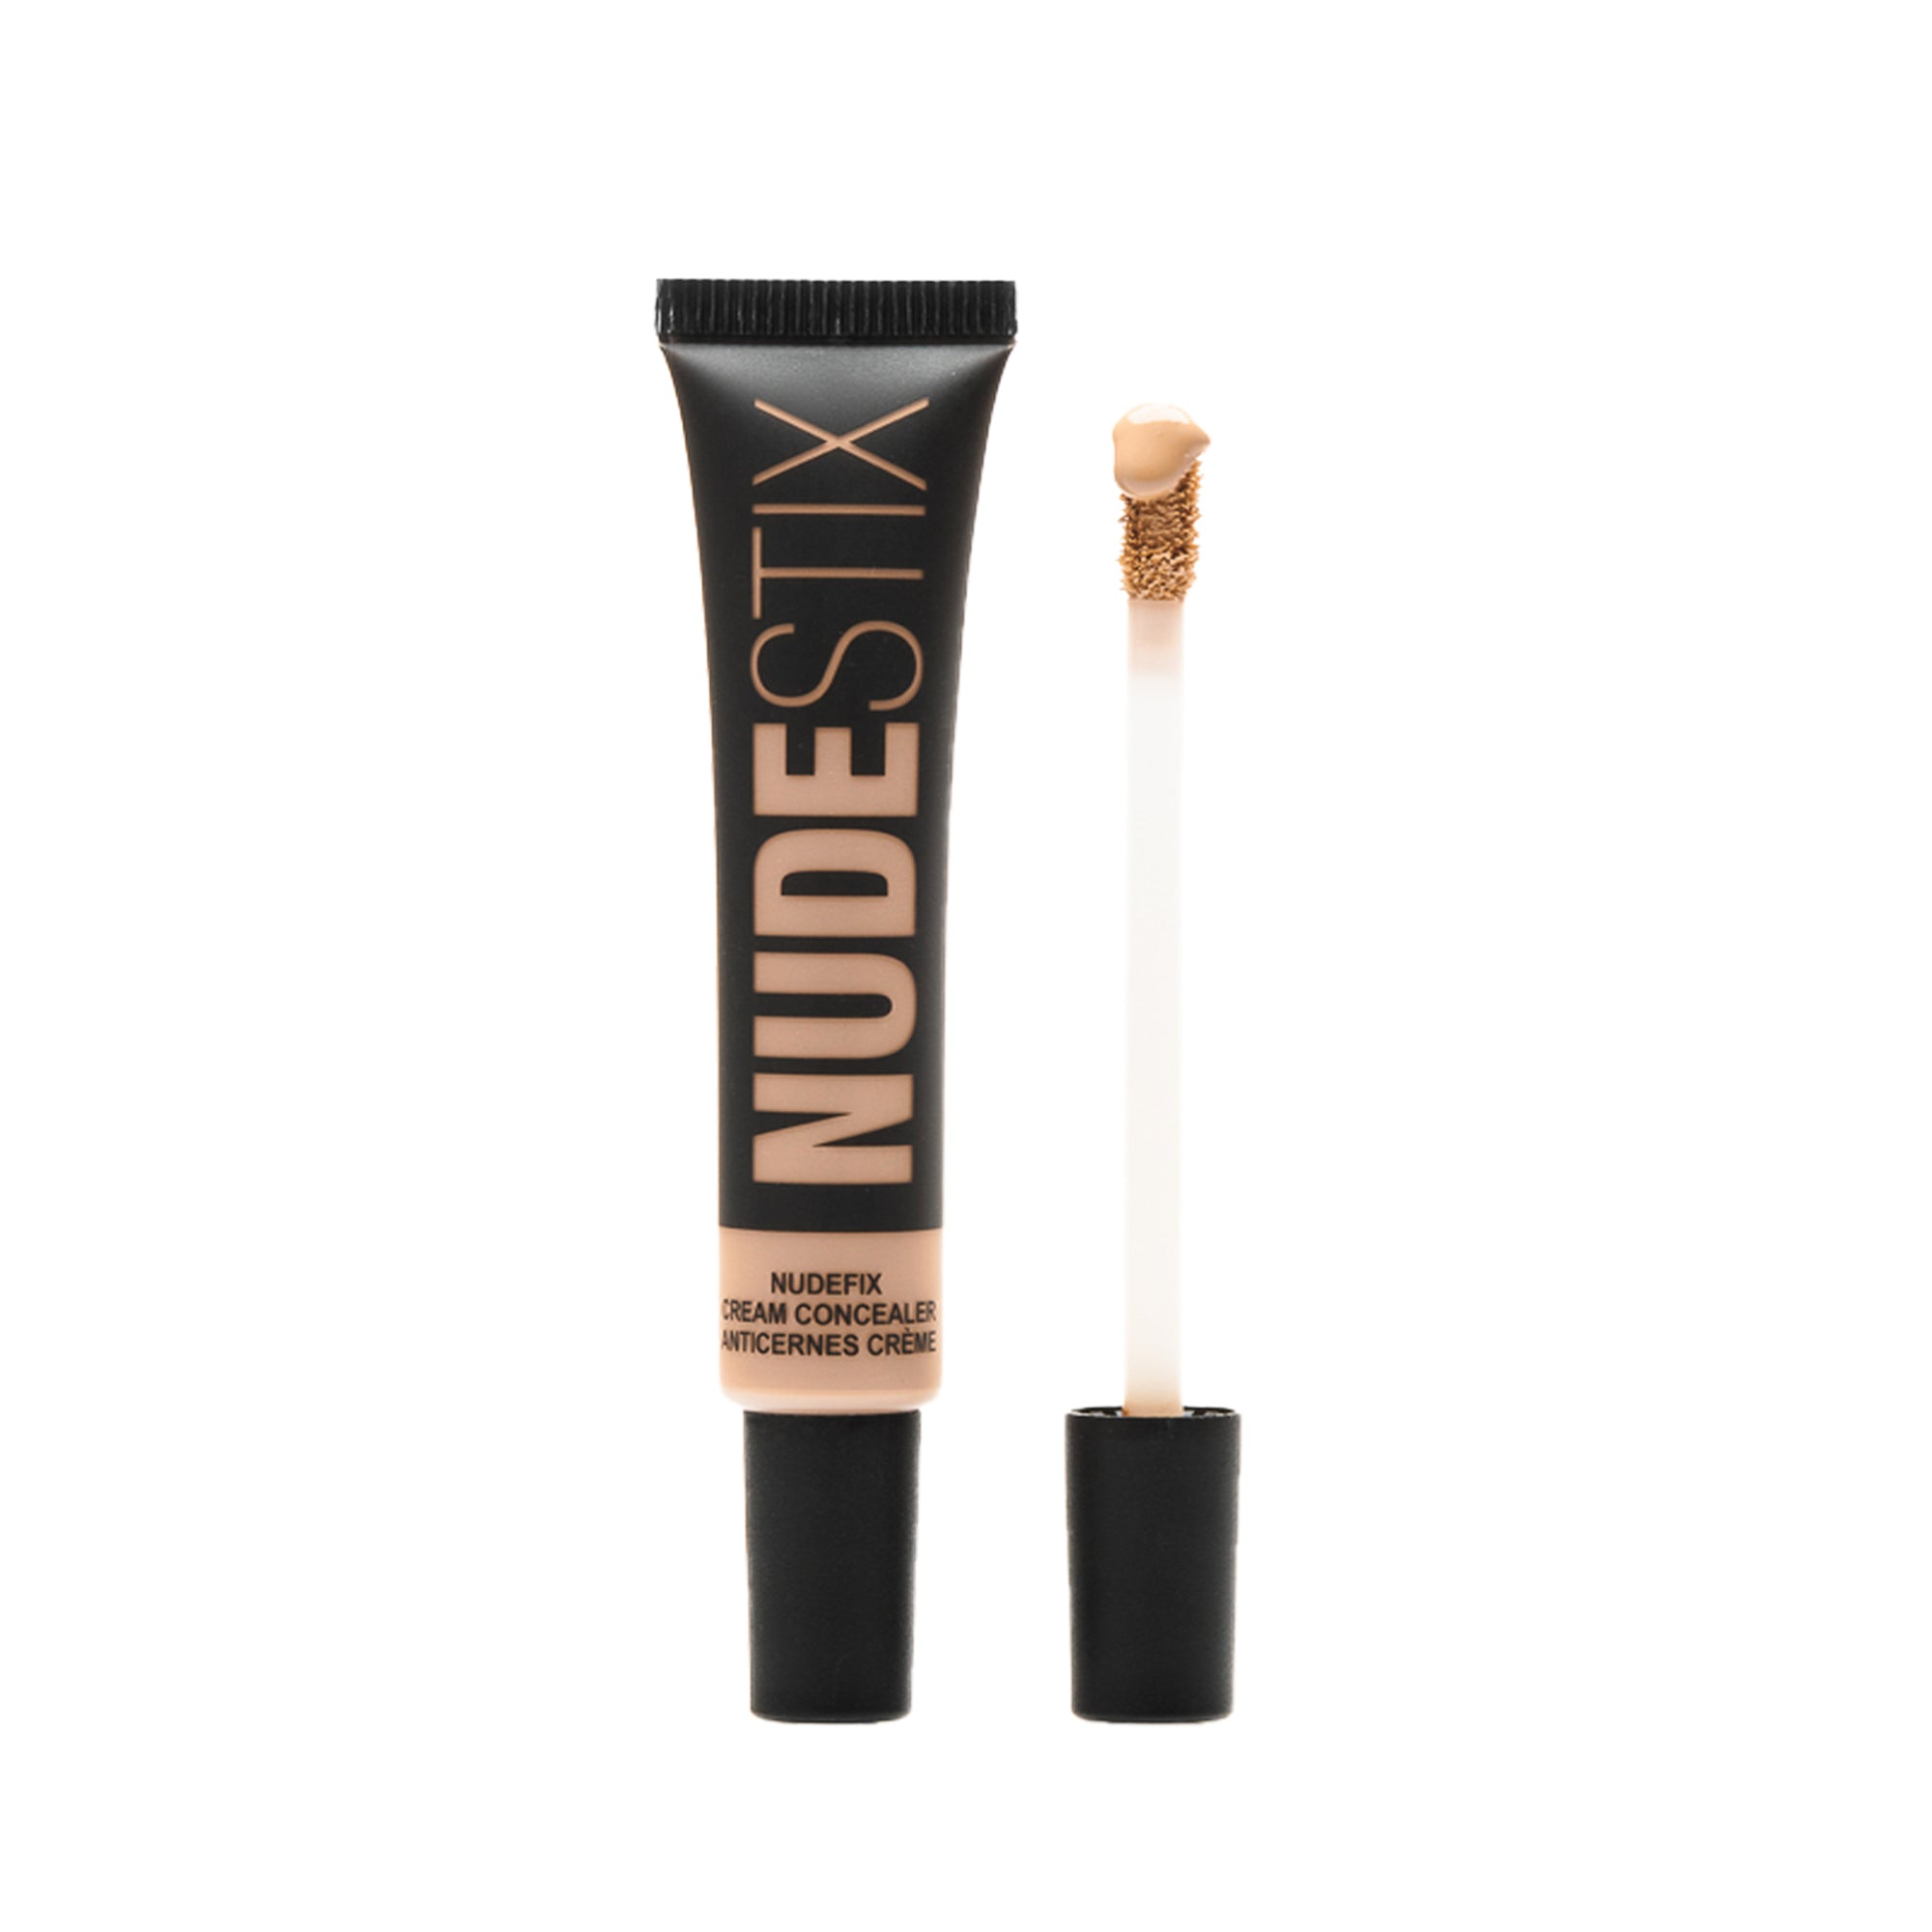 Nude 5 ~ 3ML, Nudefix Concealer in Nude 5 (4783673311325)